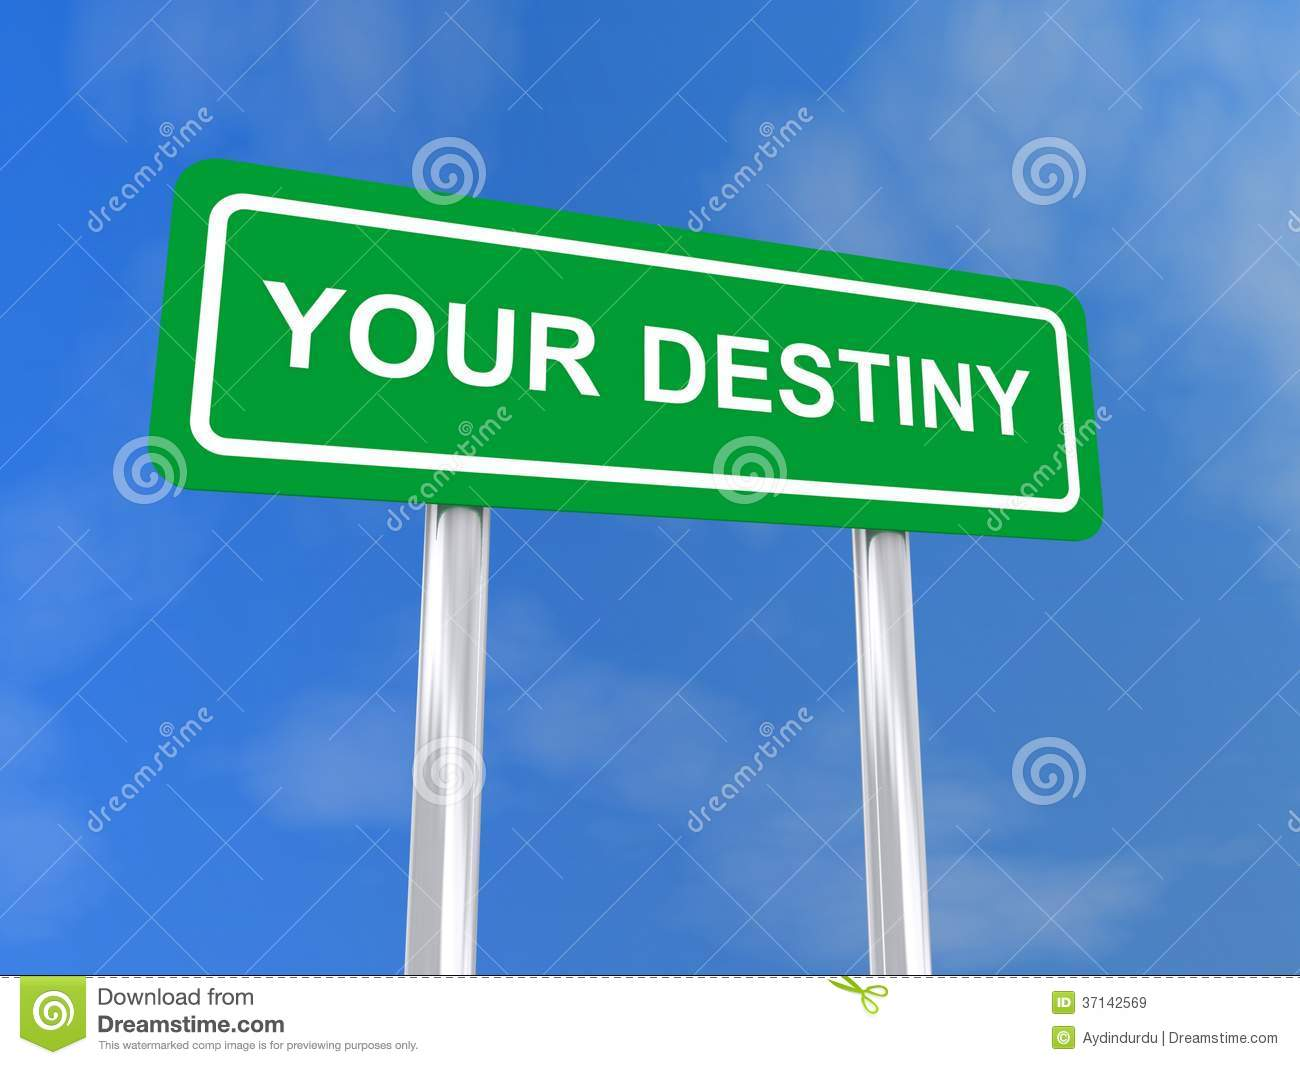 Your destiny sign royalty free stock images image 37142569 for The apartment design your destiny episode 1